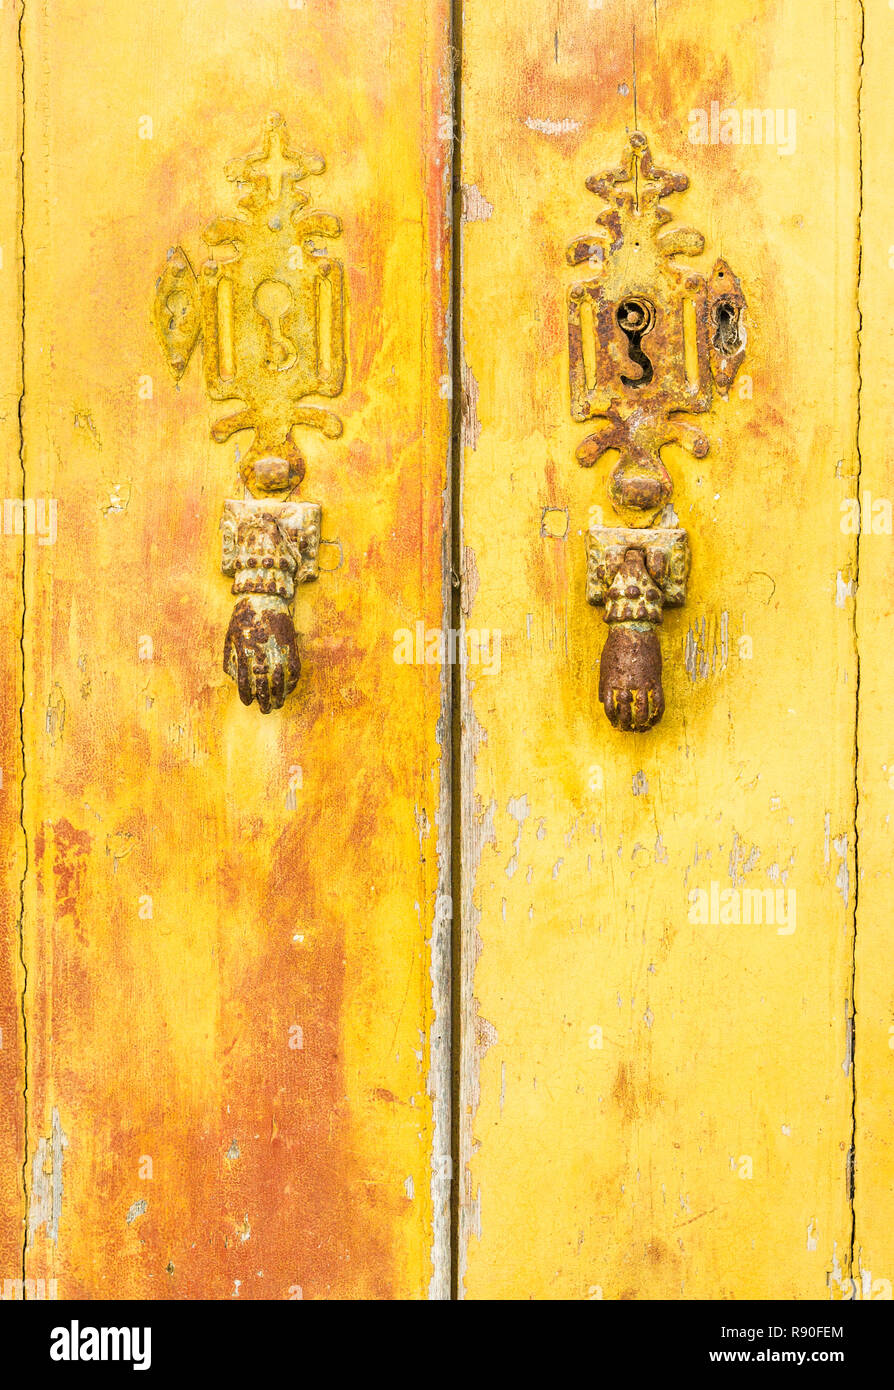 historic doorknockers in the form of hands - Stock Image